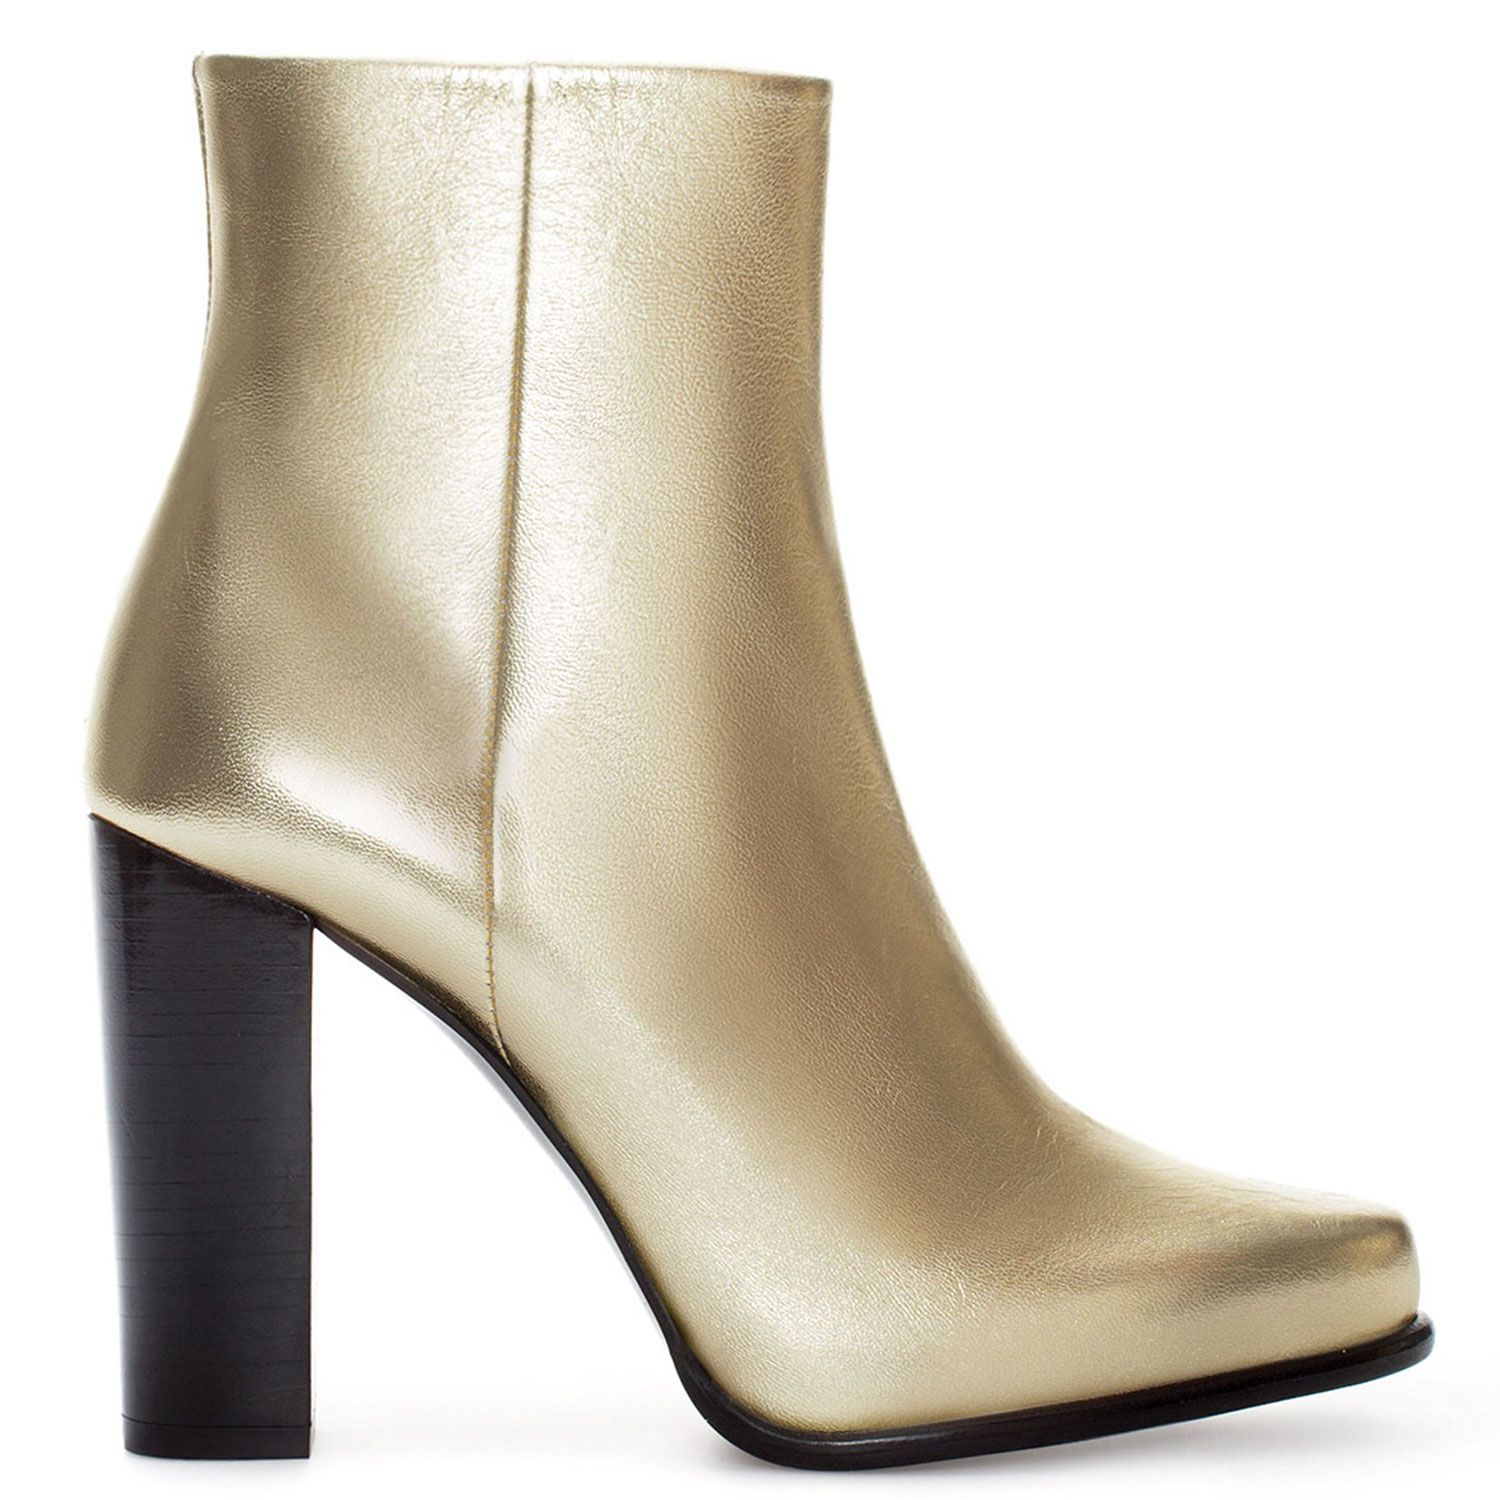 Shine On: Chic Silver & Gold Holidays Shoes